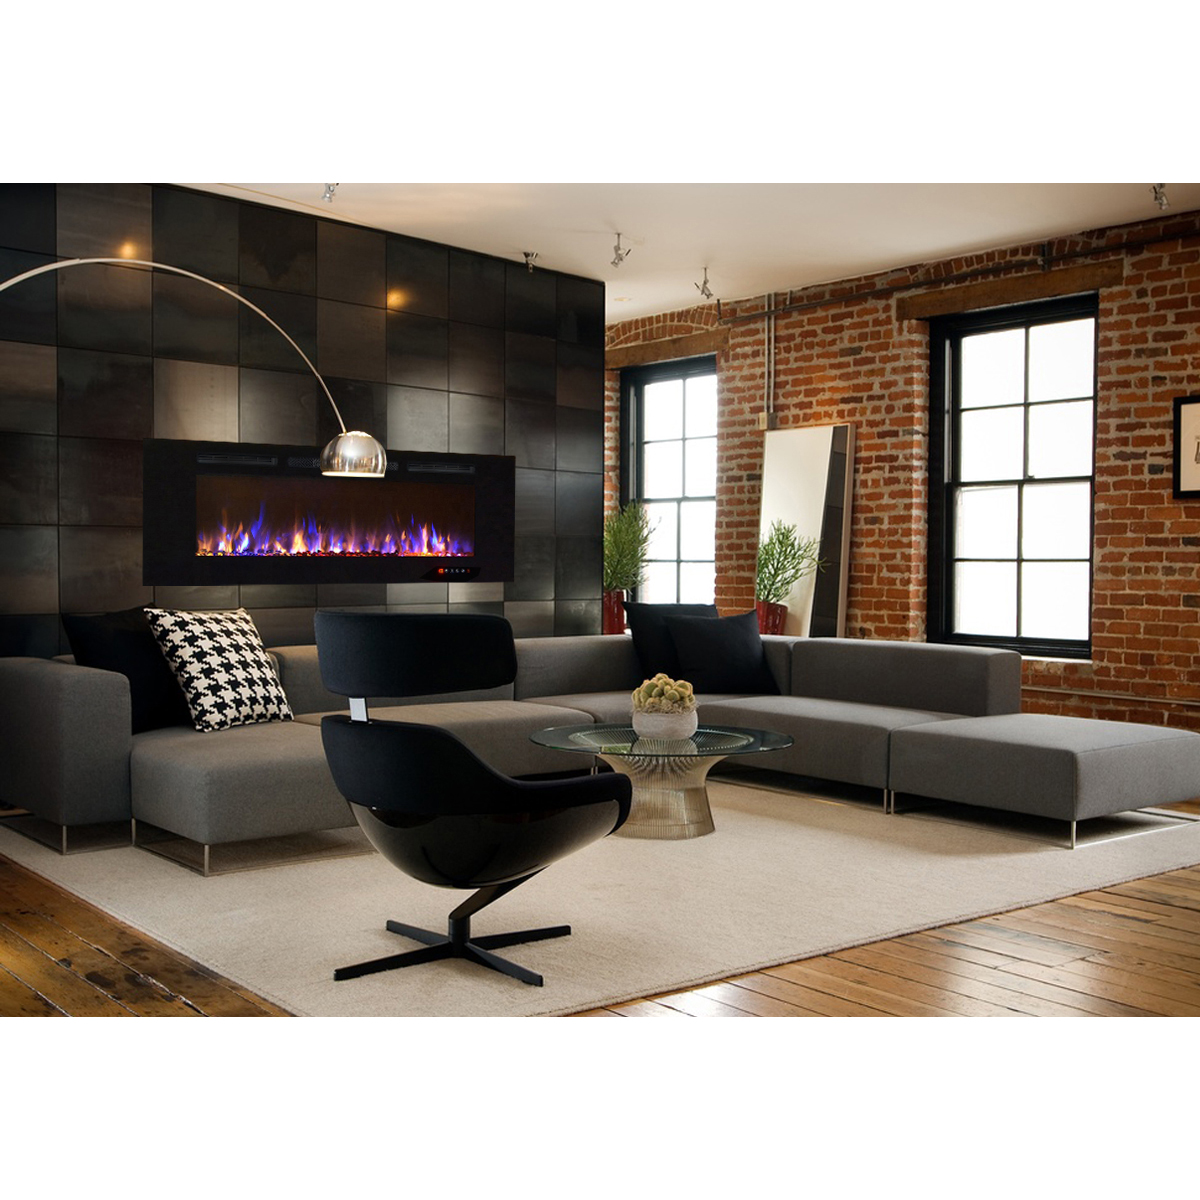 Electric Fireplace Built Into Wall Astoria 60 Inch Built In Ventless Heater Recessed Wall Mounted Electric Fireplace Multi Color